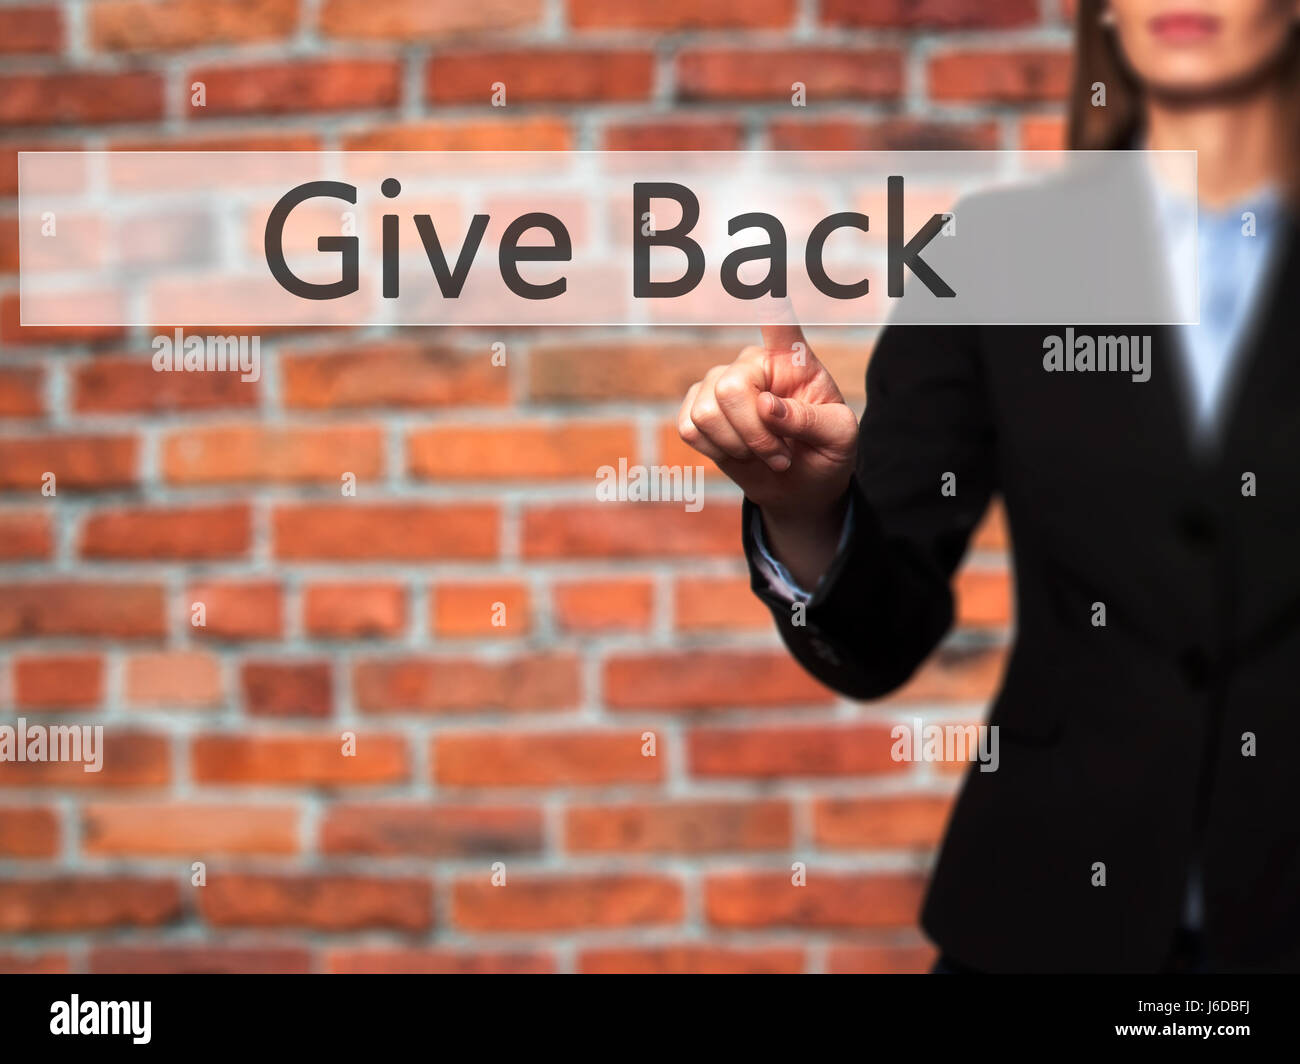 Give Back - Businesswoman hand pressing button on touch screen interface. Business, technology, internet concept. - Stock Image